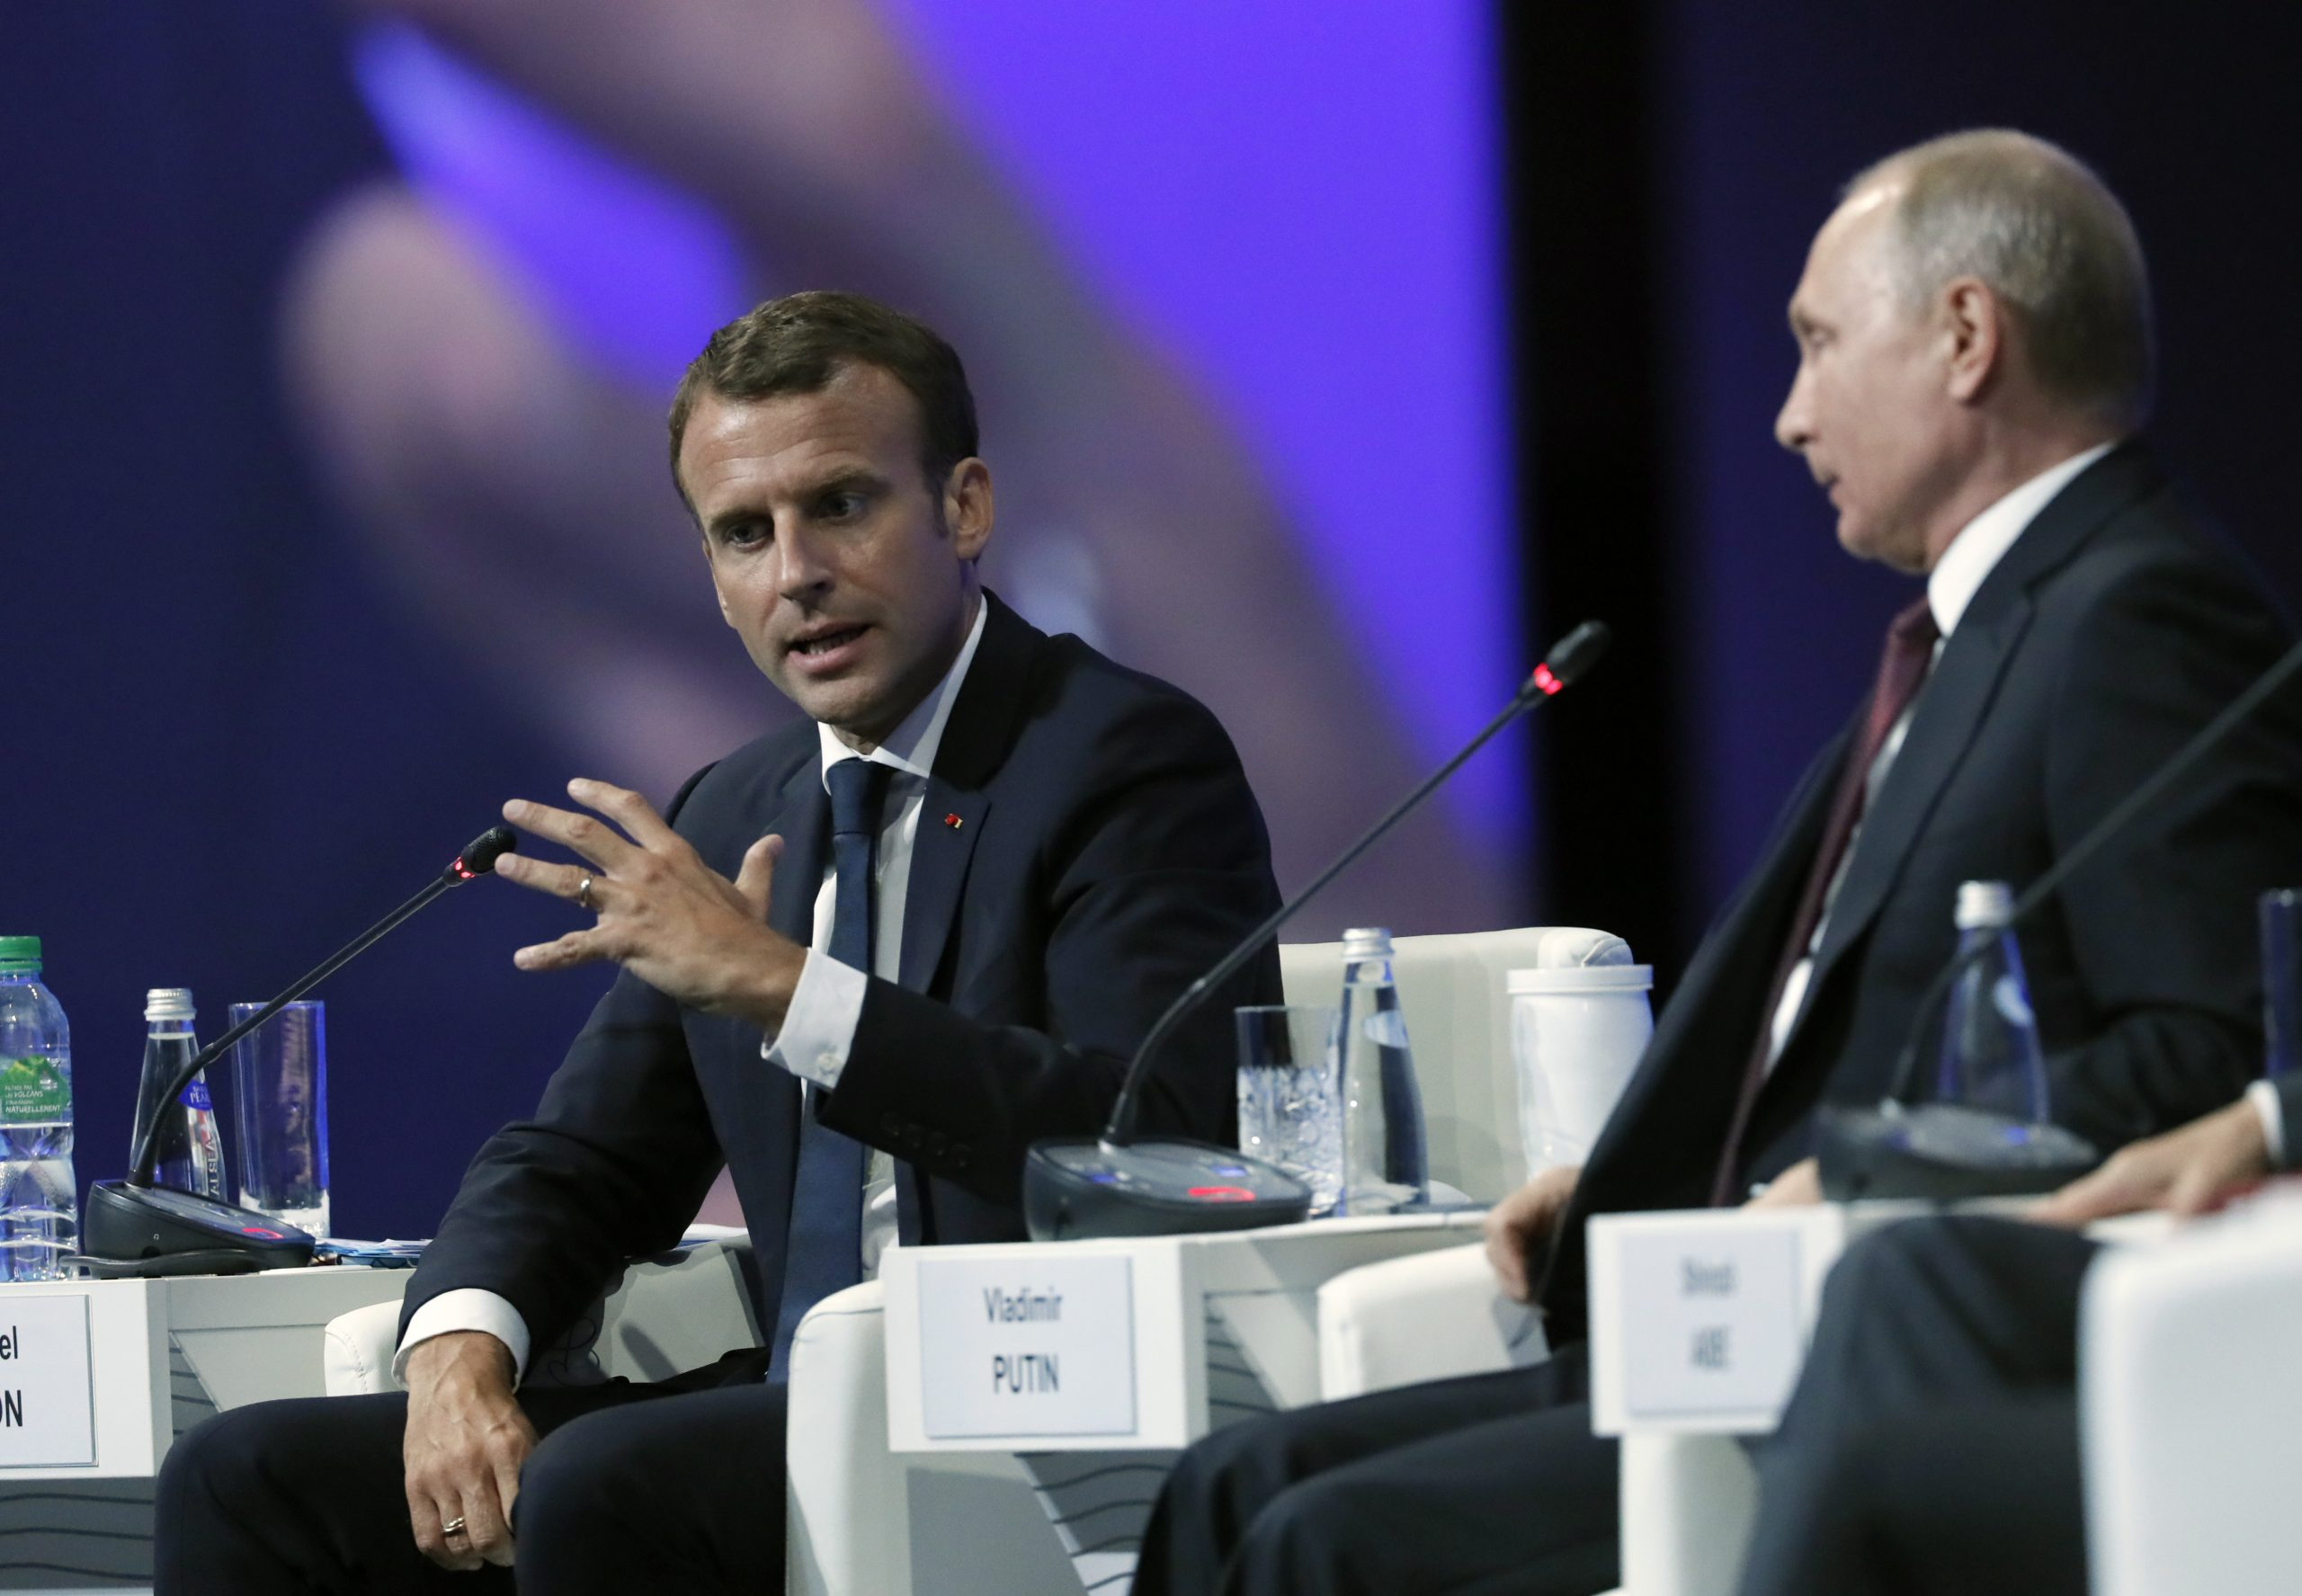 Emmanuel Macron And French Russian Relations In Times Of Crisis In International Alliances